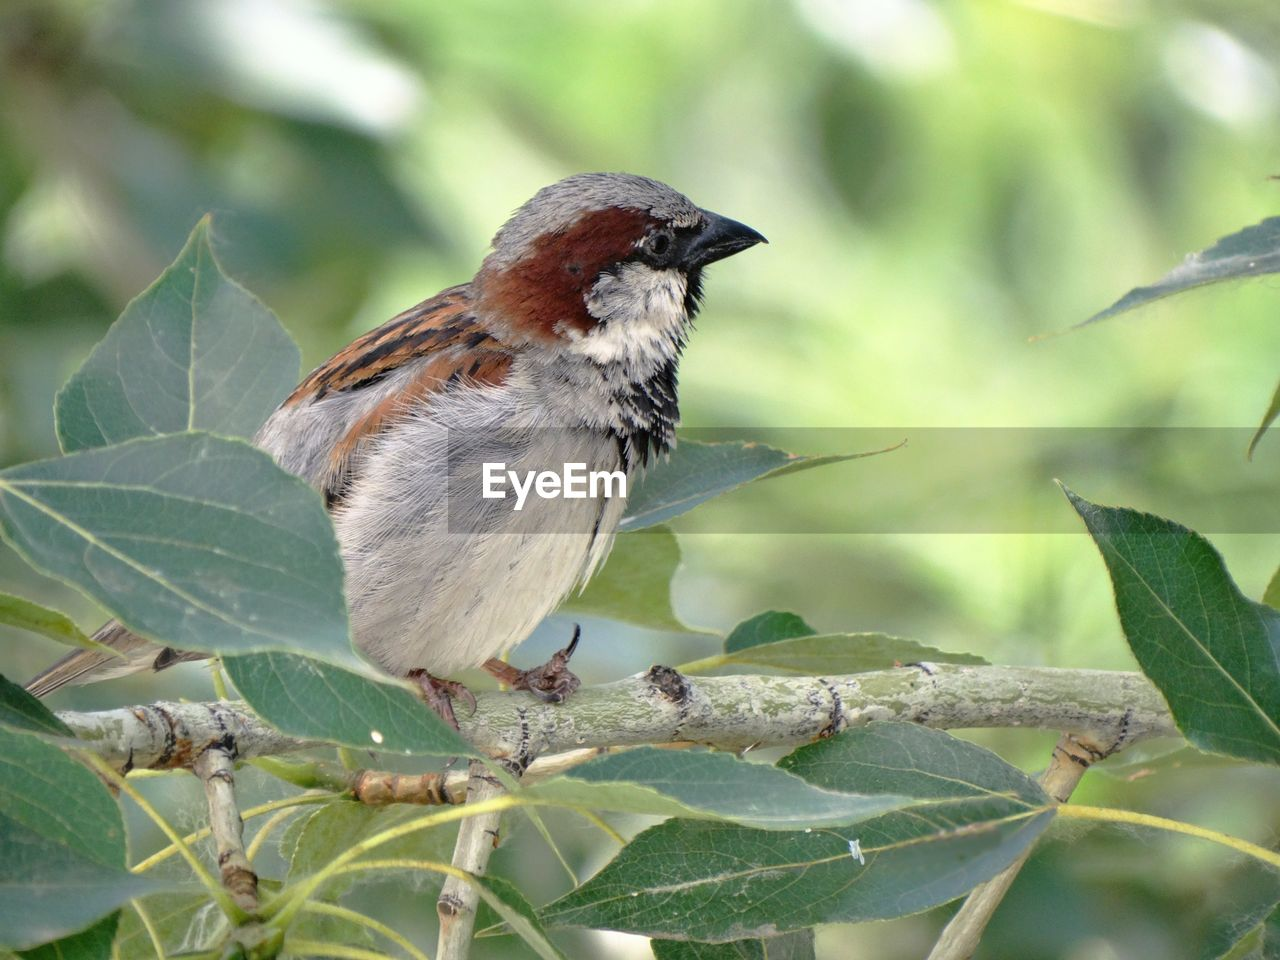 plant part, leaf, animal themes, animal, animal wildlife, animals in the wild, bird, vertebrate, one animal, perching, plant, close-up, nature, no people, tree, focus on foreground, day, branch, growth, sparrow